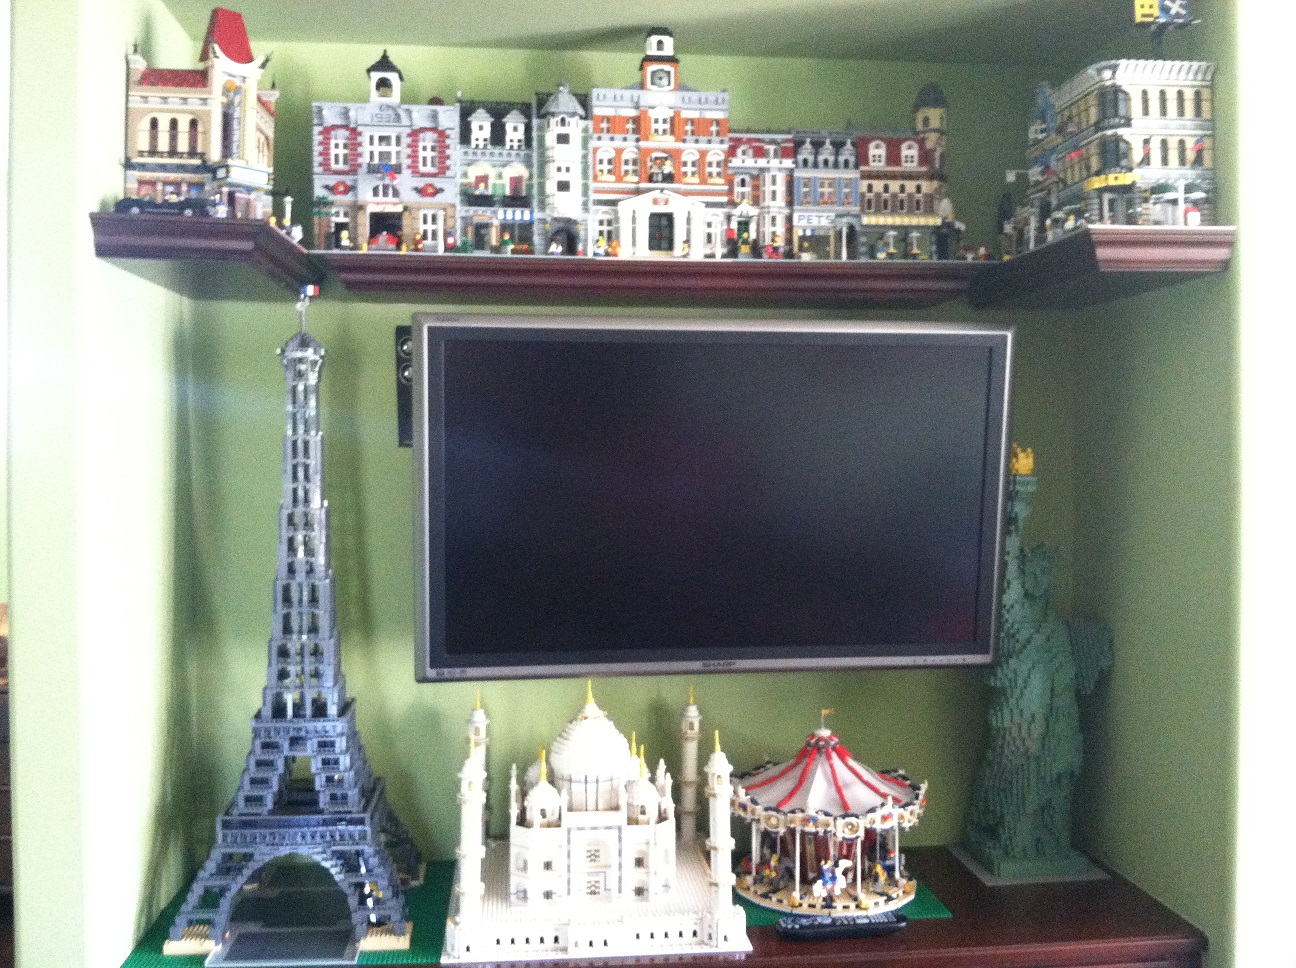 How do you display your assembled LEGO sets?